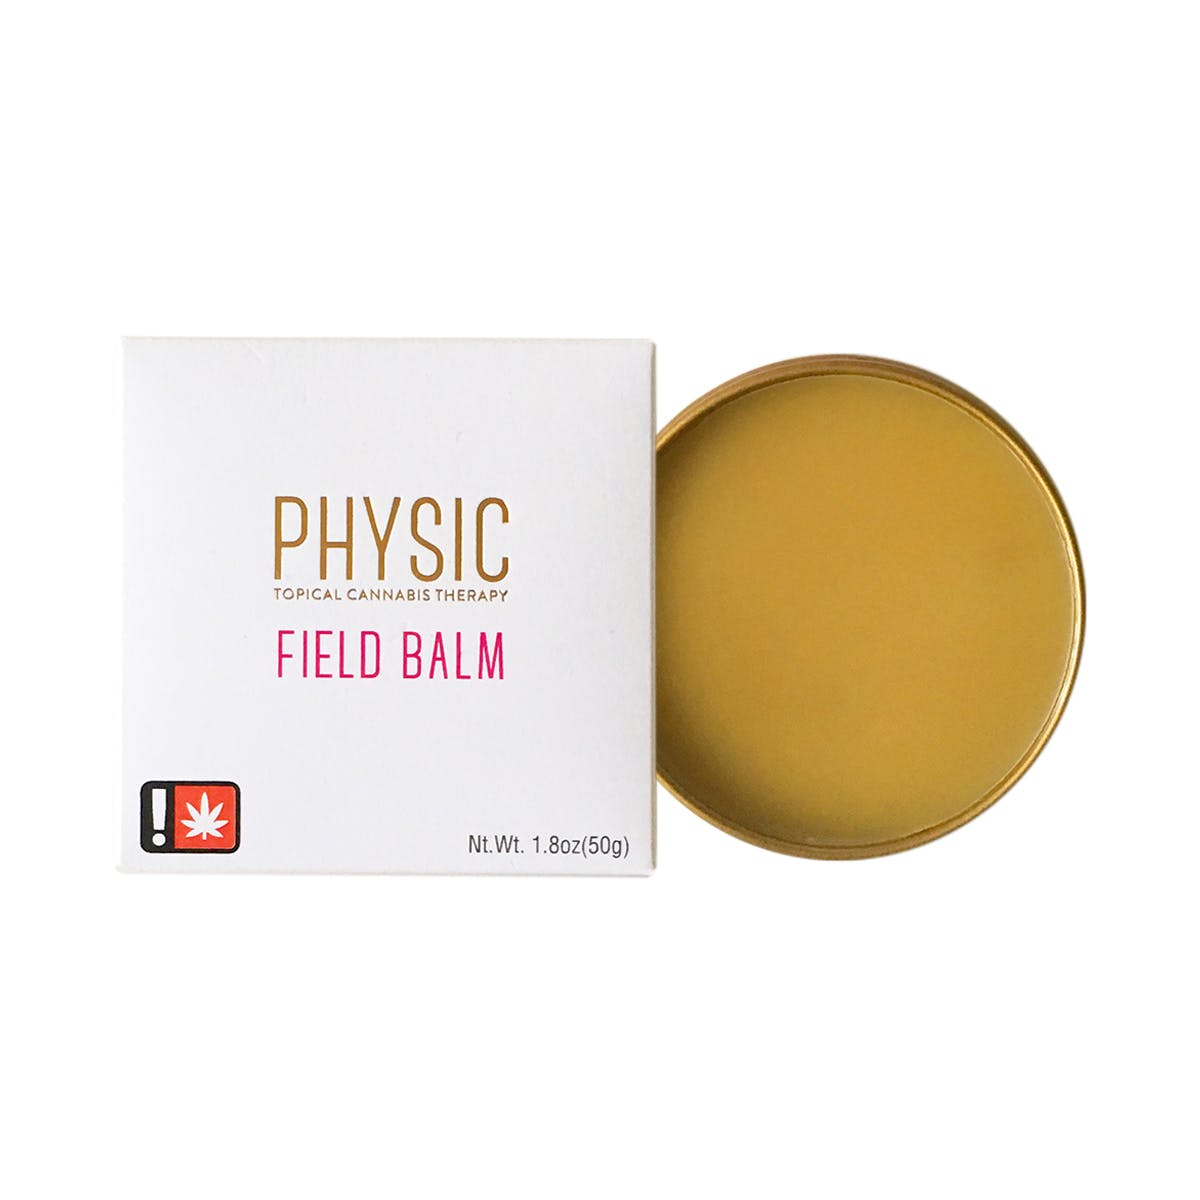 Physic : Field Balm Away 3:1